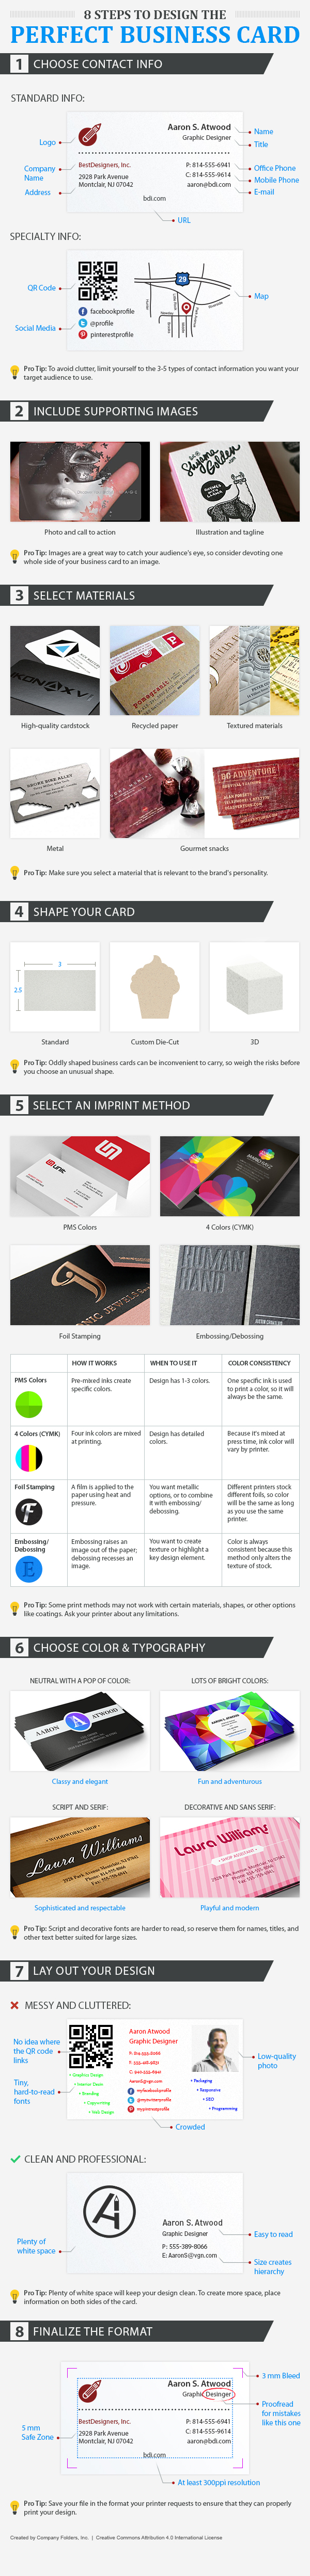 Business Card Design Tips Top Ideas for Designers in 2017